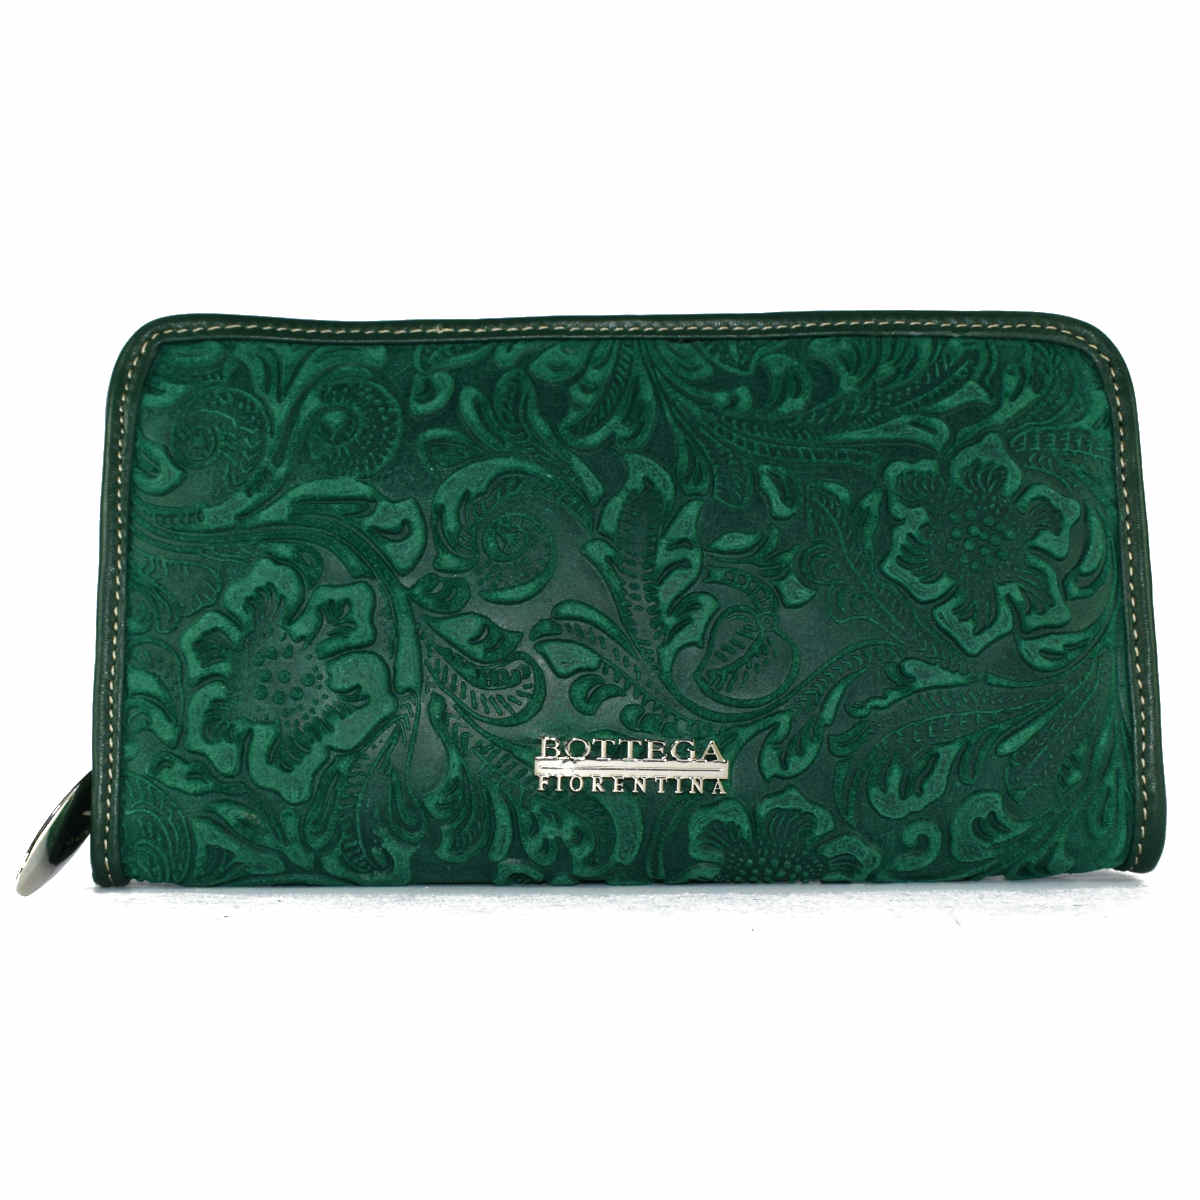 1688 ZIP TOP WOMAN WALLET by Bottega Fiorentina